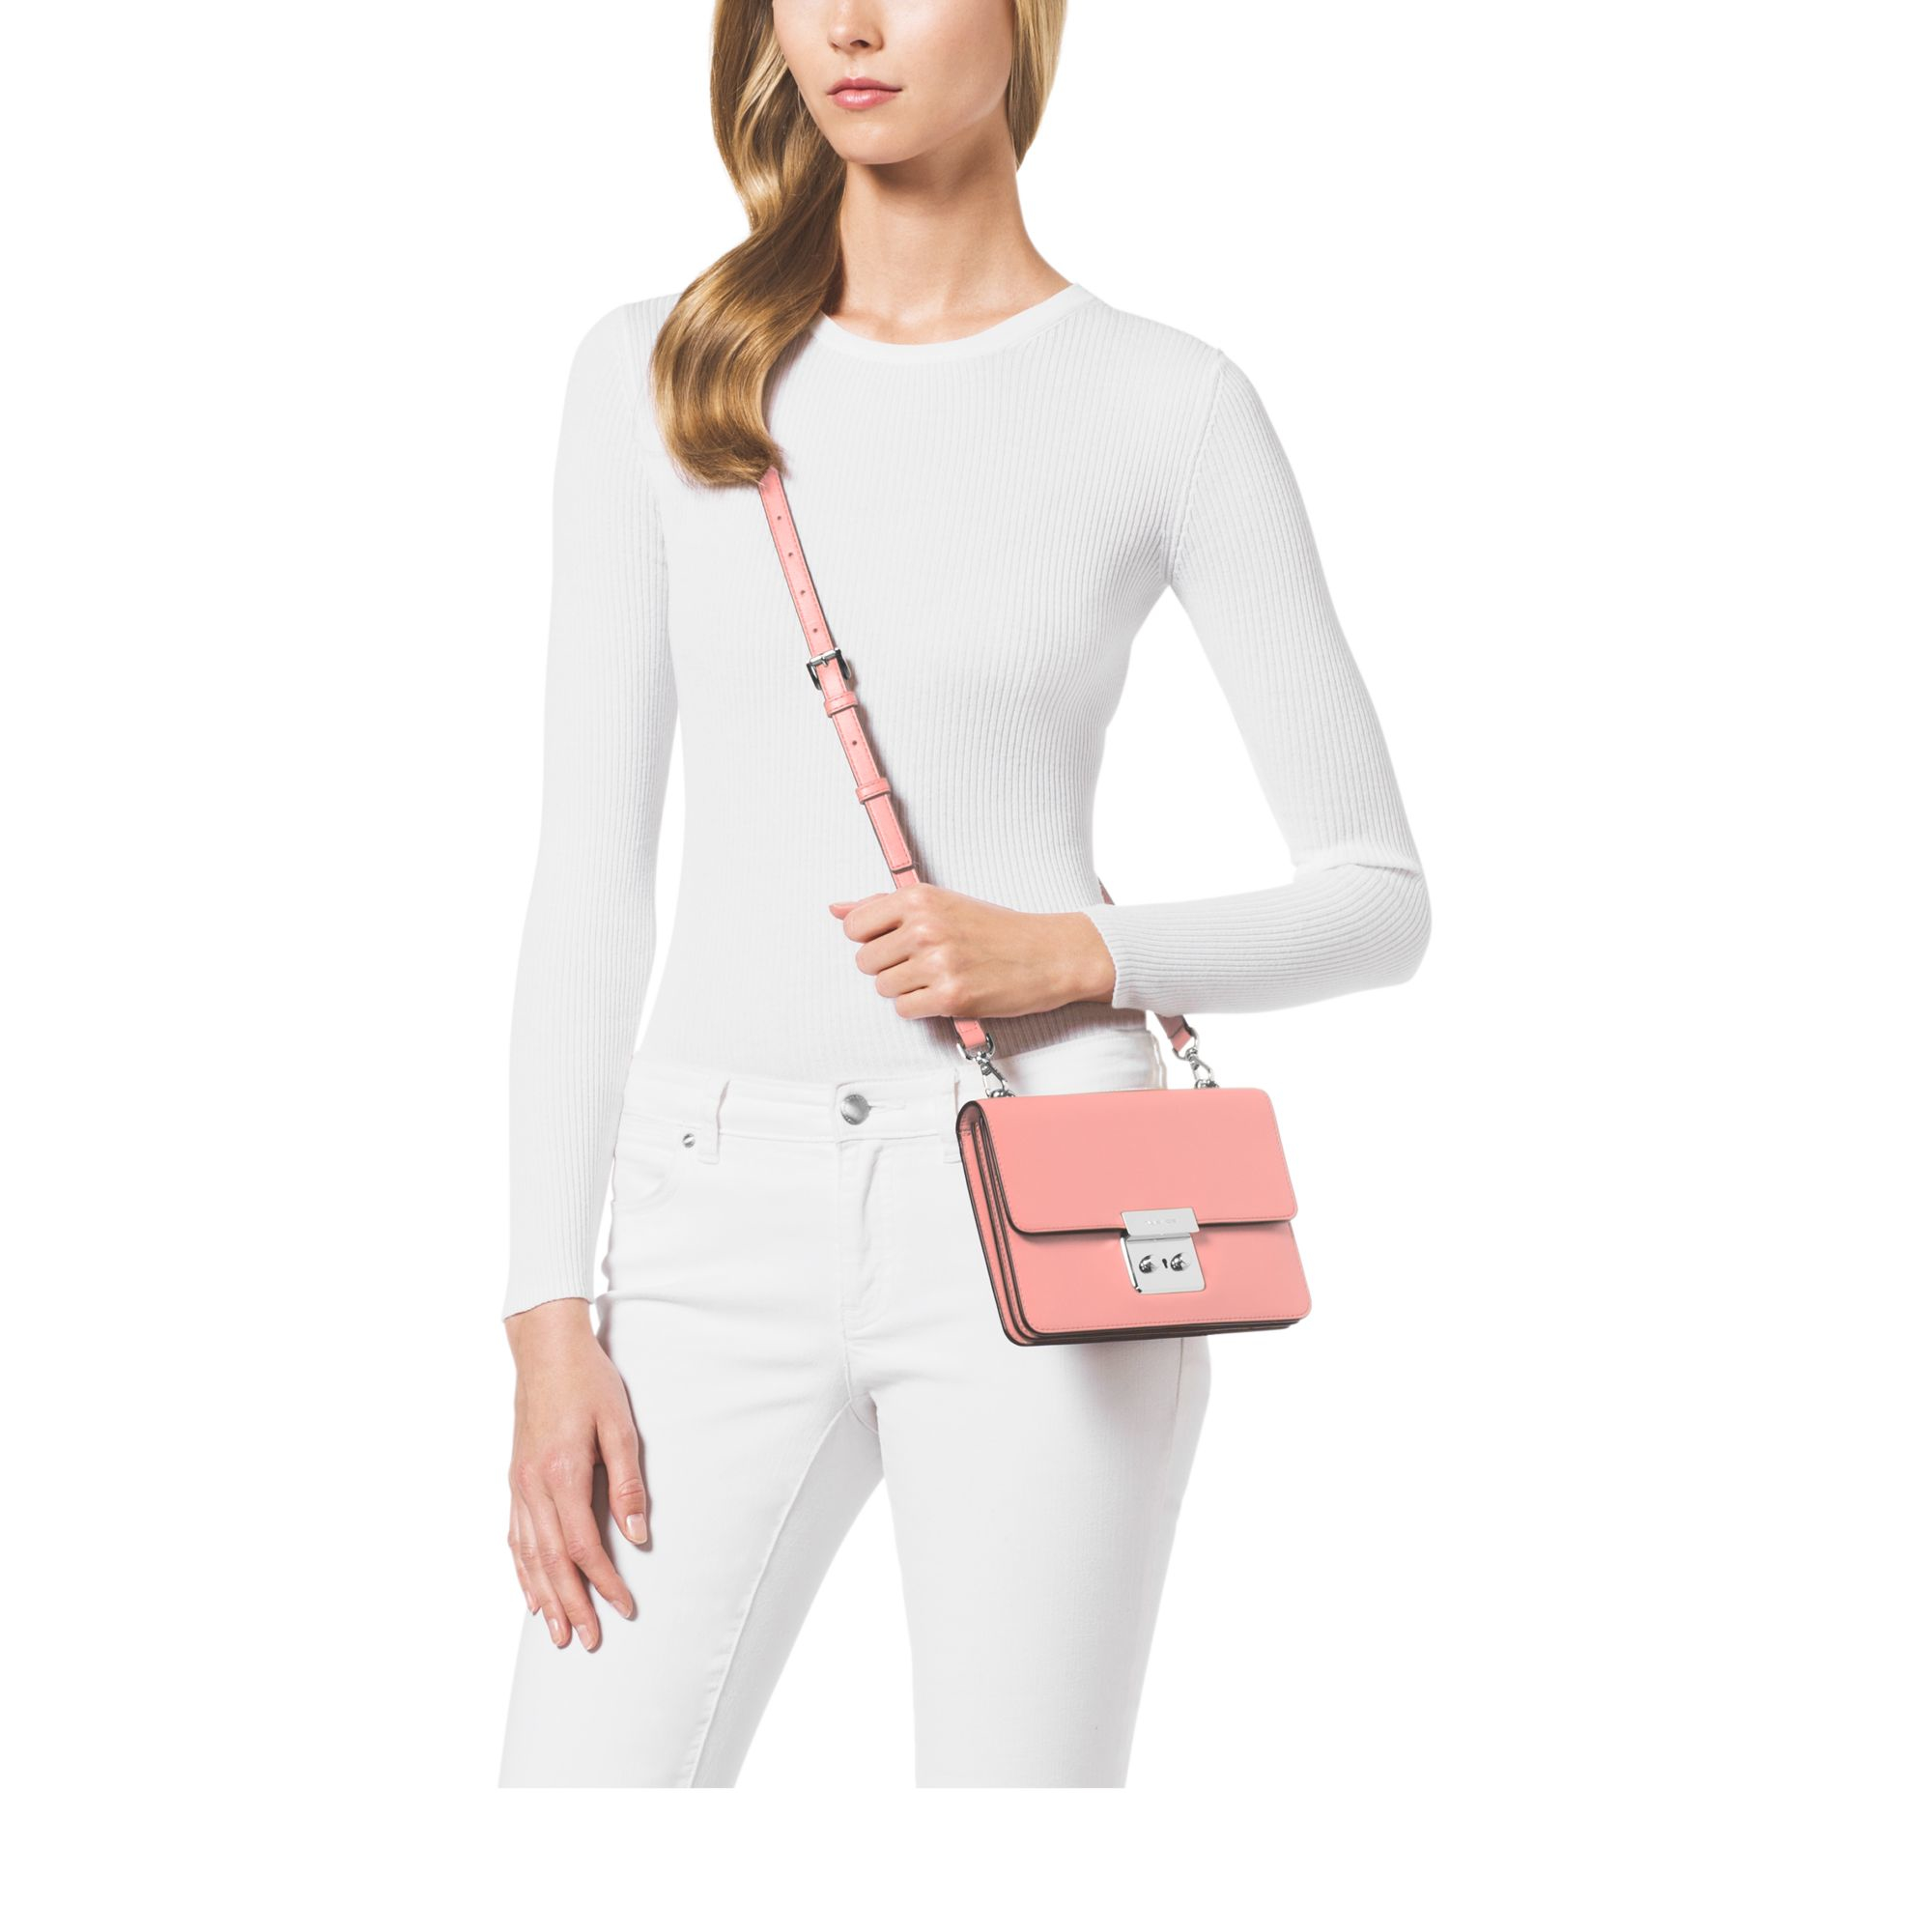 e4af6b2da1487e Michael Kors Sloan Small Calf Leather Cross-Body Bag in Pink - Lyst